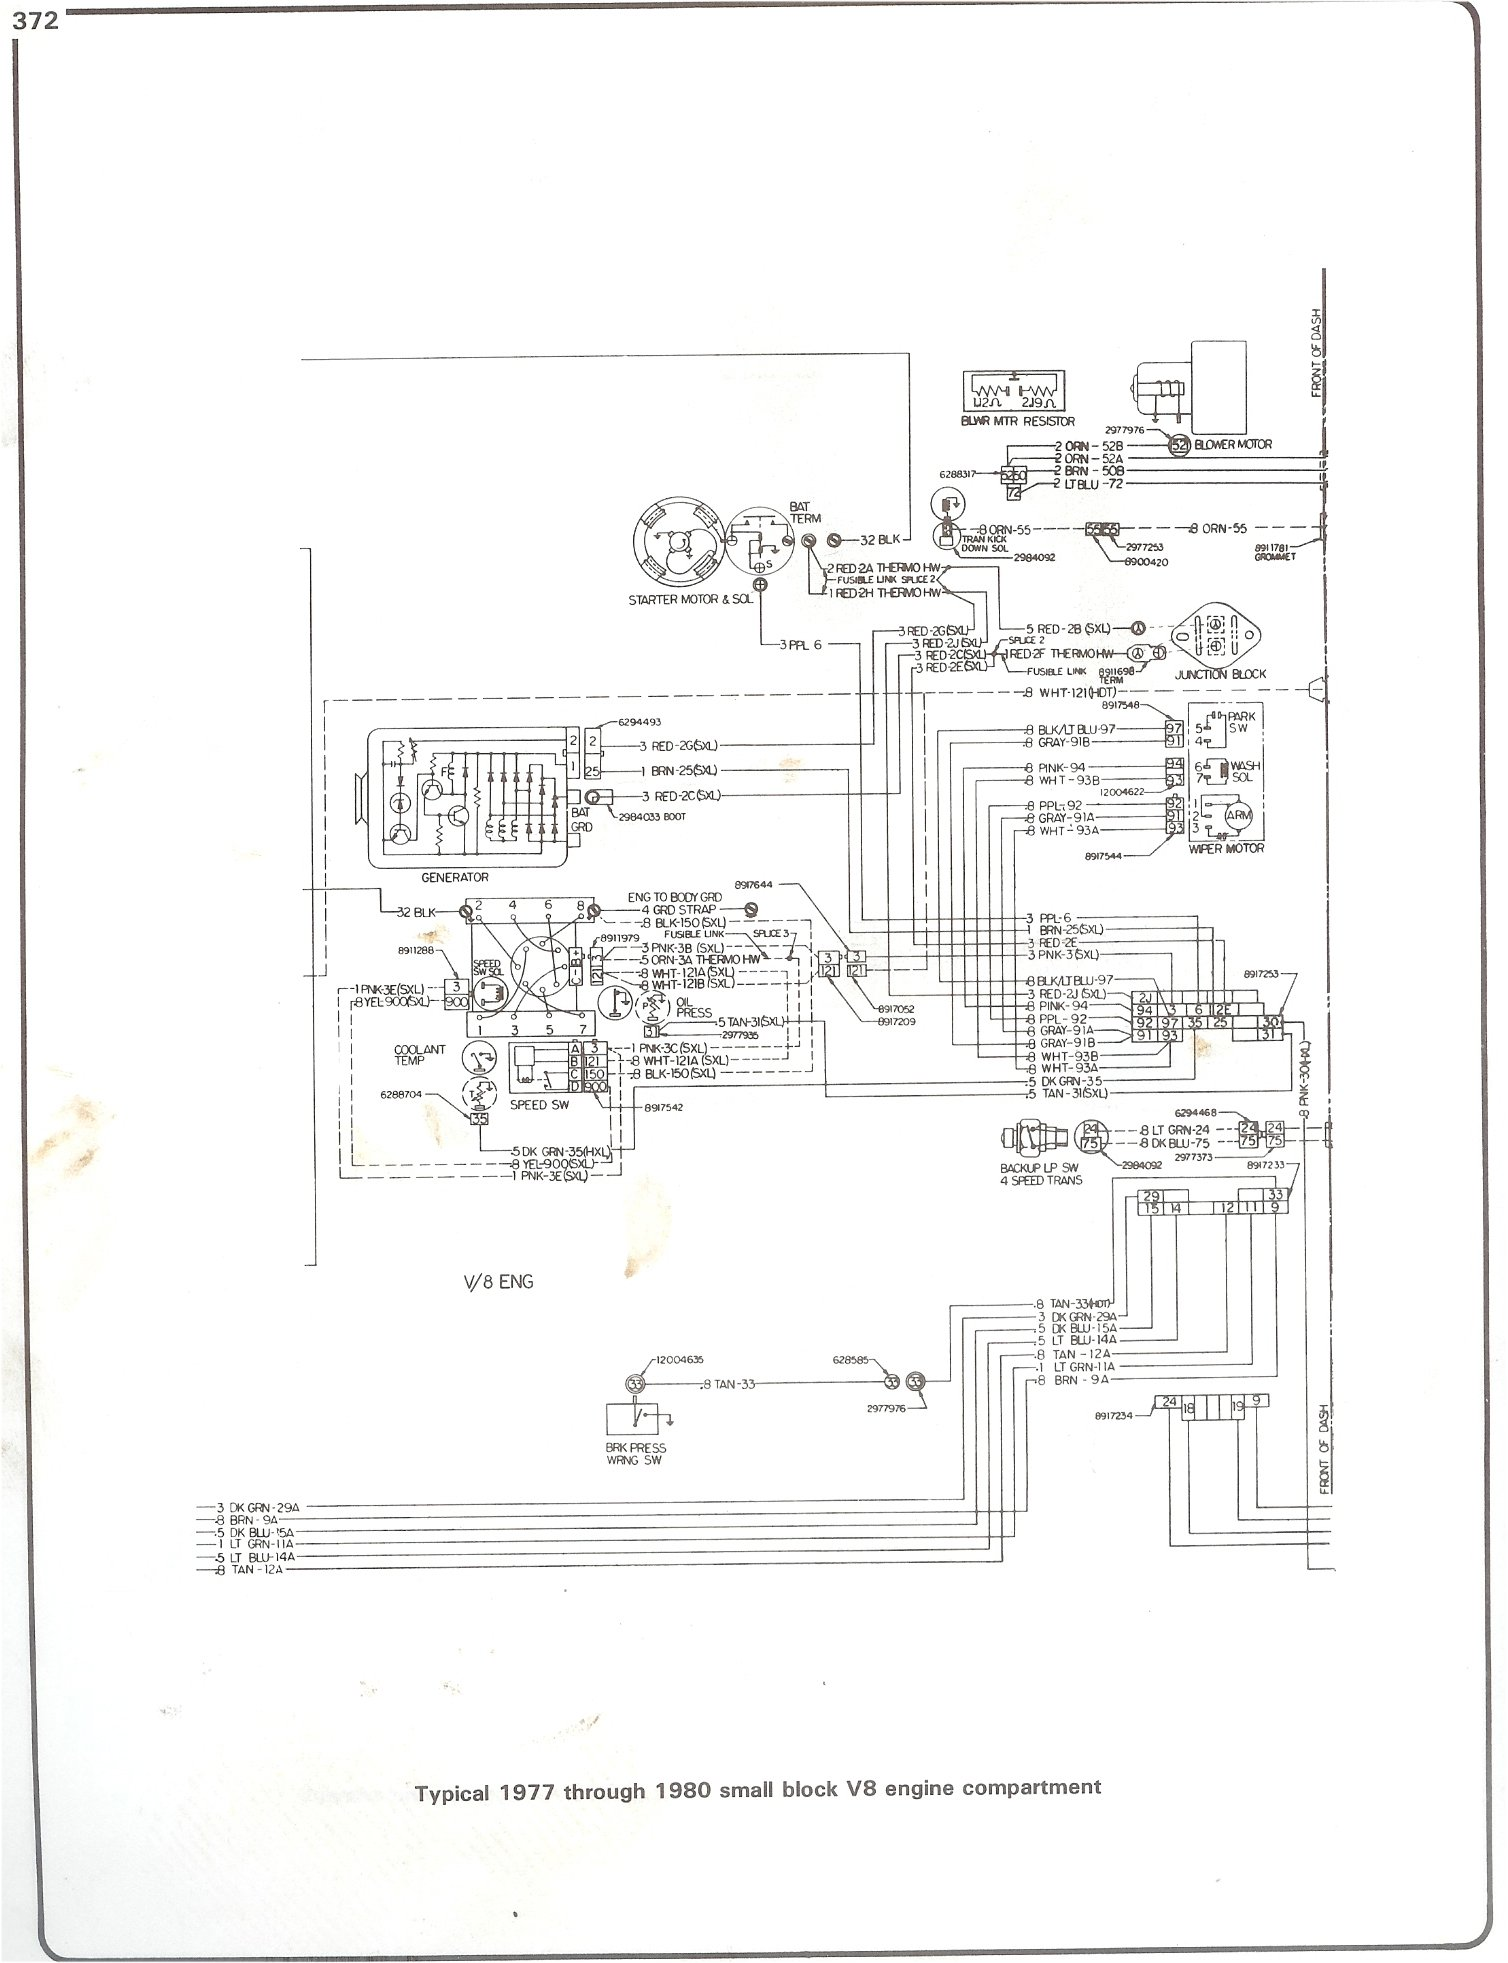 77 Gm Ignition Wiring Diagram Great Installation Of Chevy 6 5 Ecm 80 Simple Rh 47 Mara Cujas De Steering Column